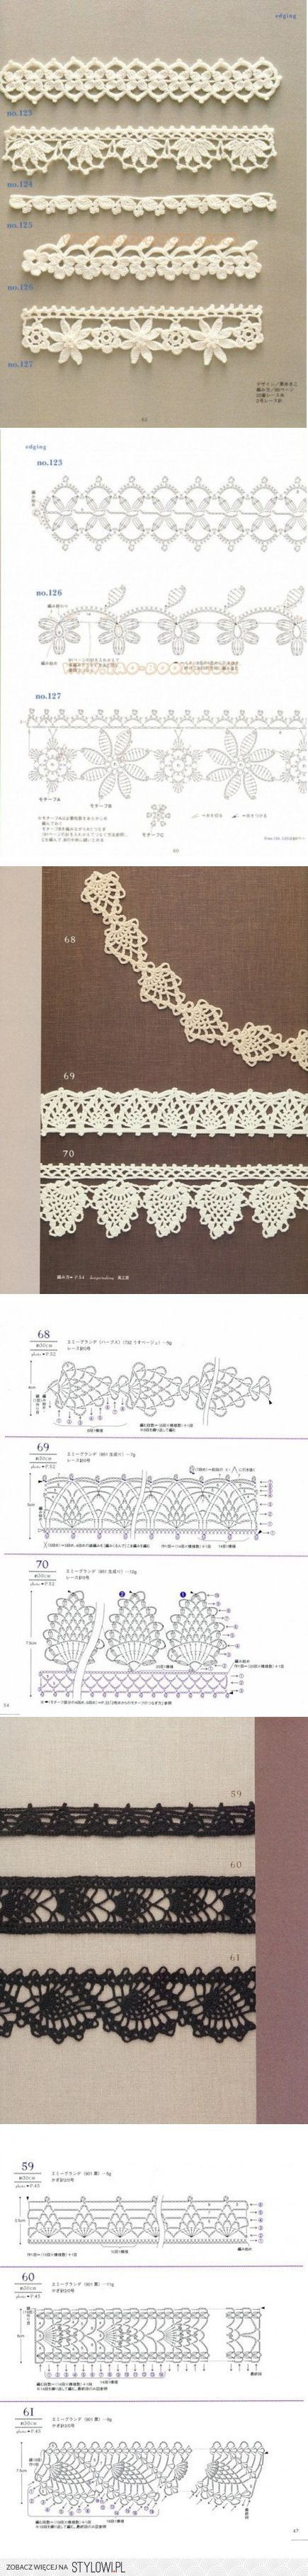 Lace Crochet Edging With Diagram 2 Guardas A T Crochetcircularedgepatterndiagram Chart Pattern More